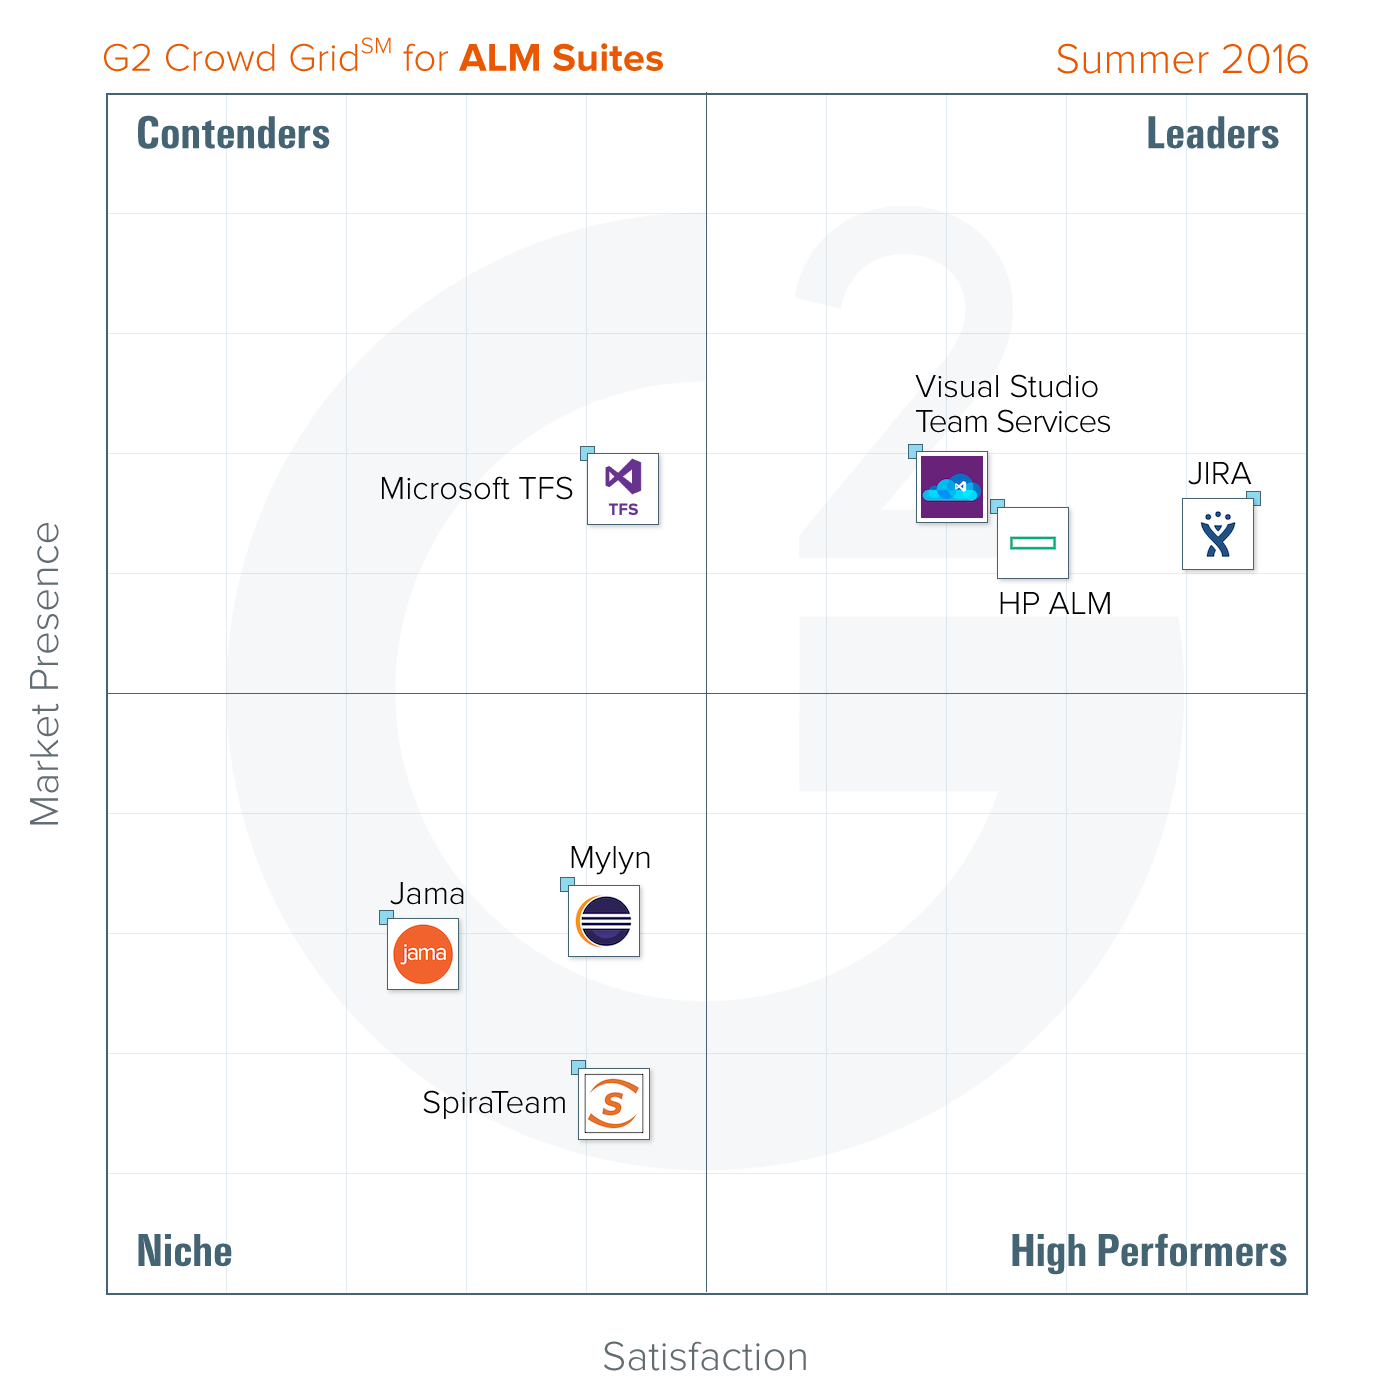 The Best ALM Suites Software According to G2 Crowd Summer